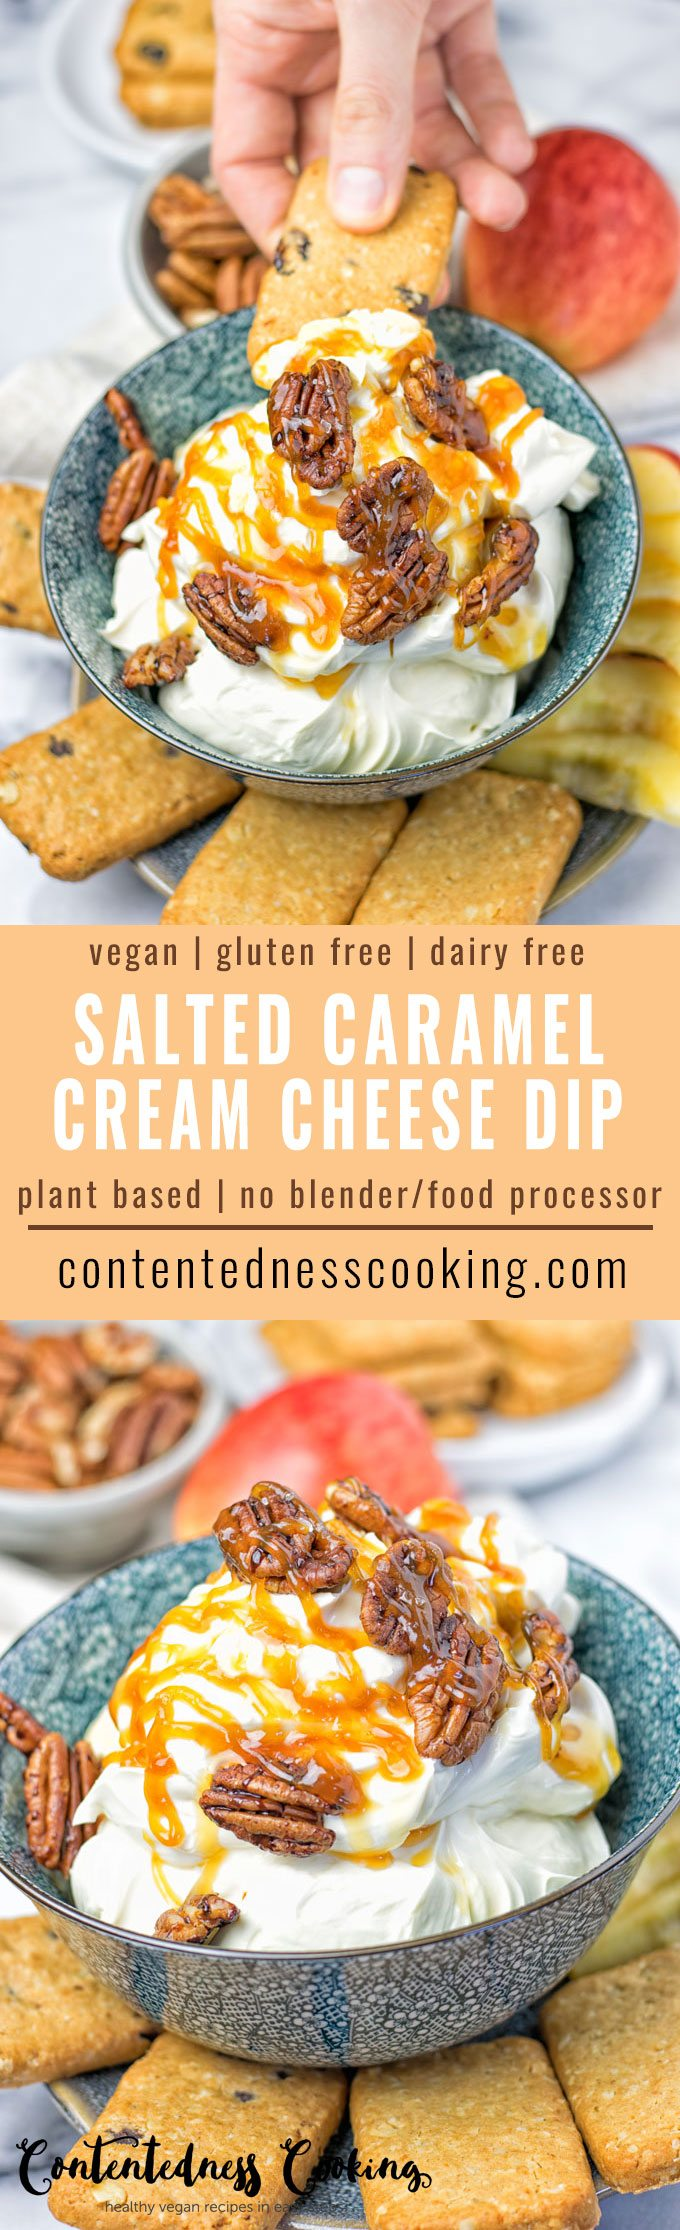 Salted Caramel Cream Cheese Dip | #vegan #glutenfree #contentednesscooking #plantbased #dairyfree